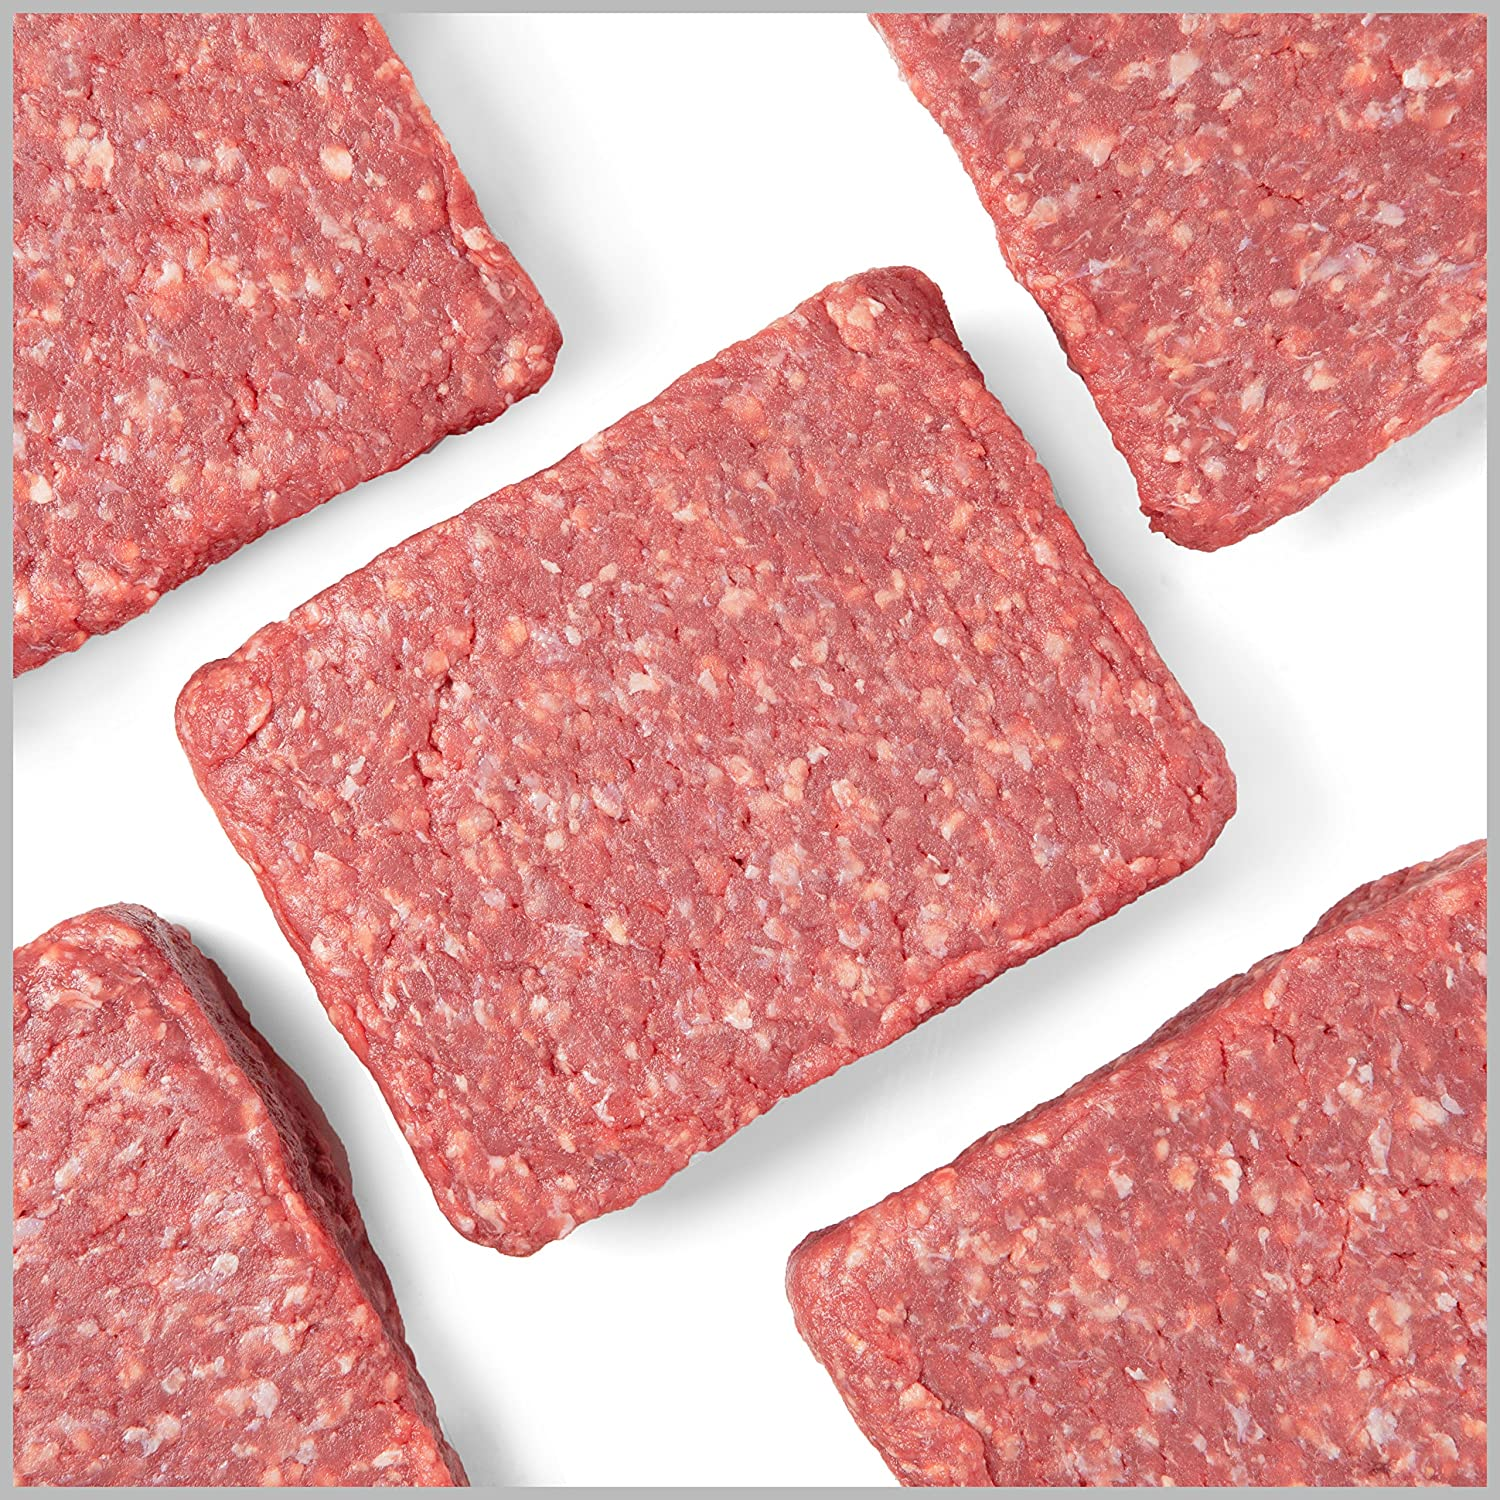 Pre, 16 (1LB) 85% Lean Ground Beef Bricks – 100% Grass-Fed, Grass-Finished and Pasture-Raised Beef